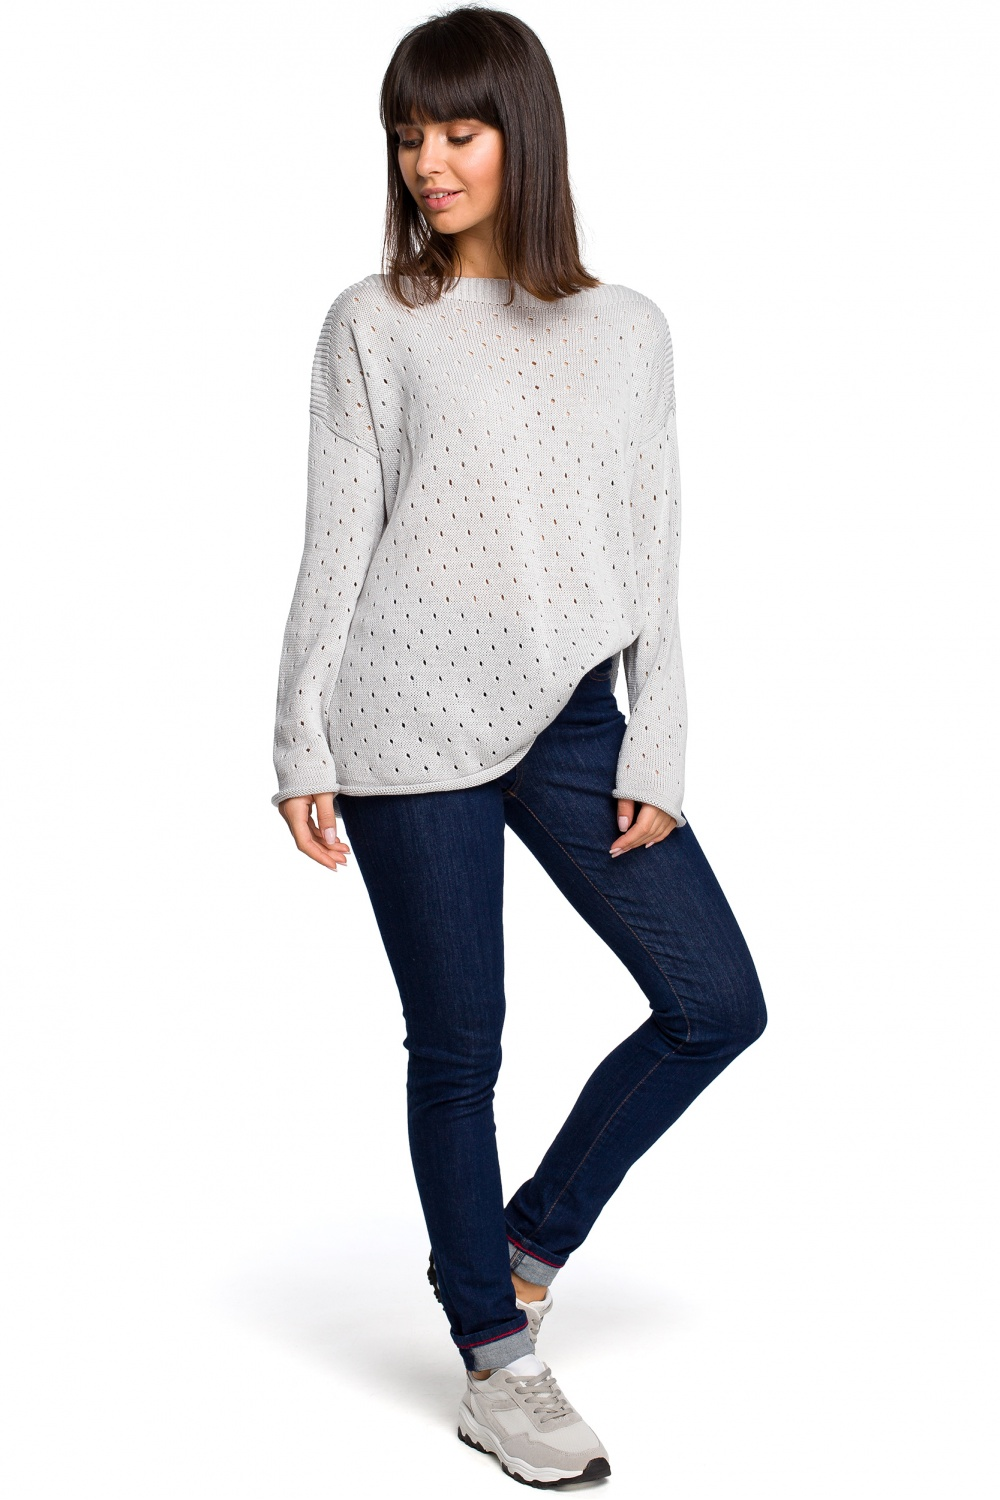 Pulover model 129163 BE Knit